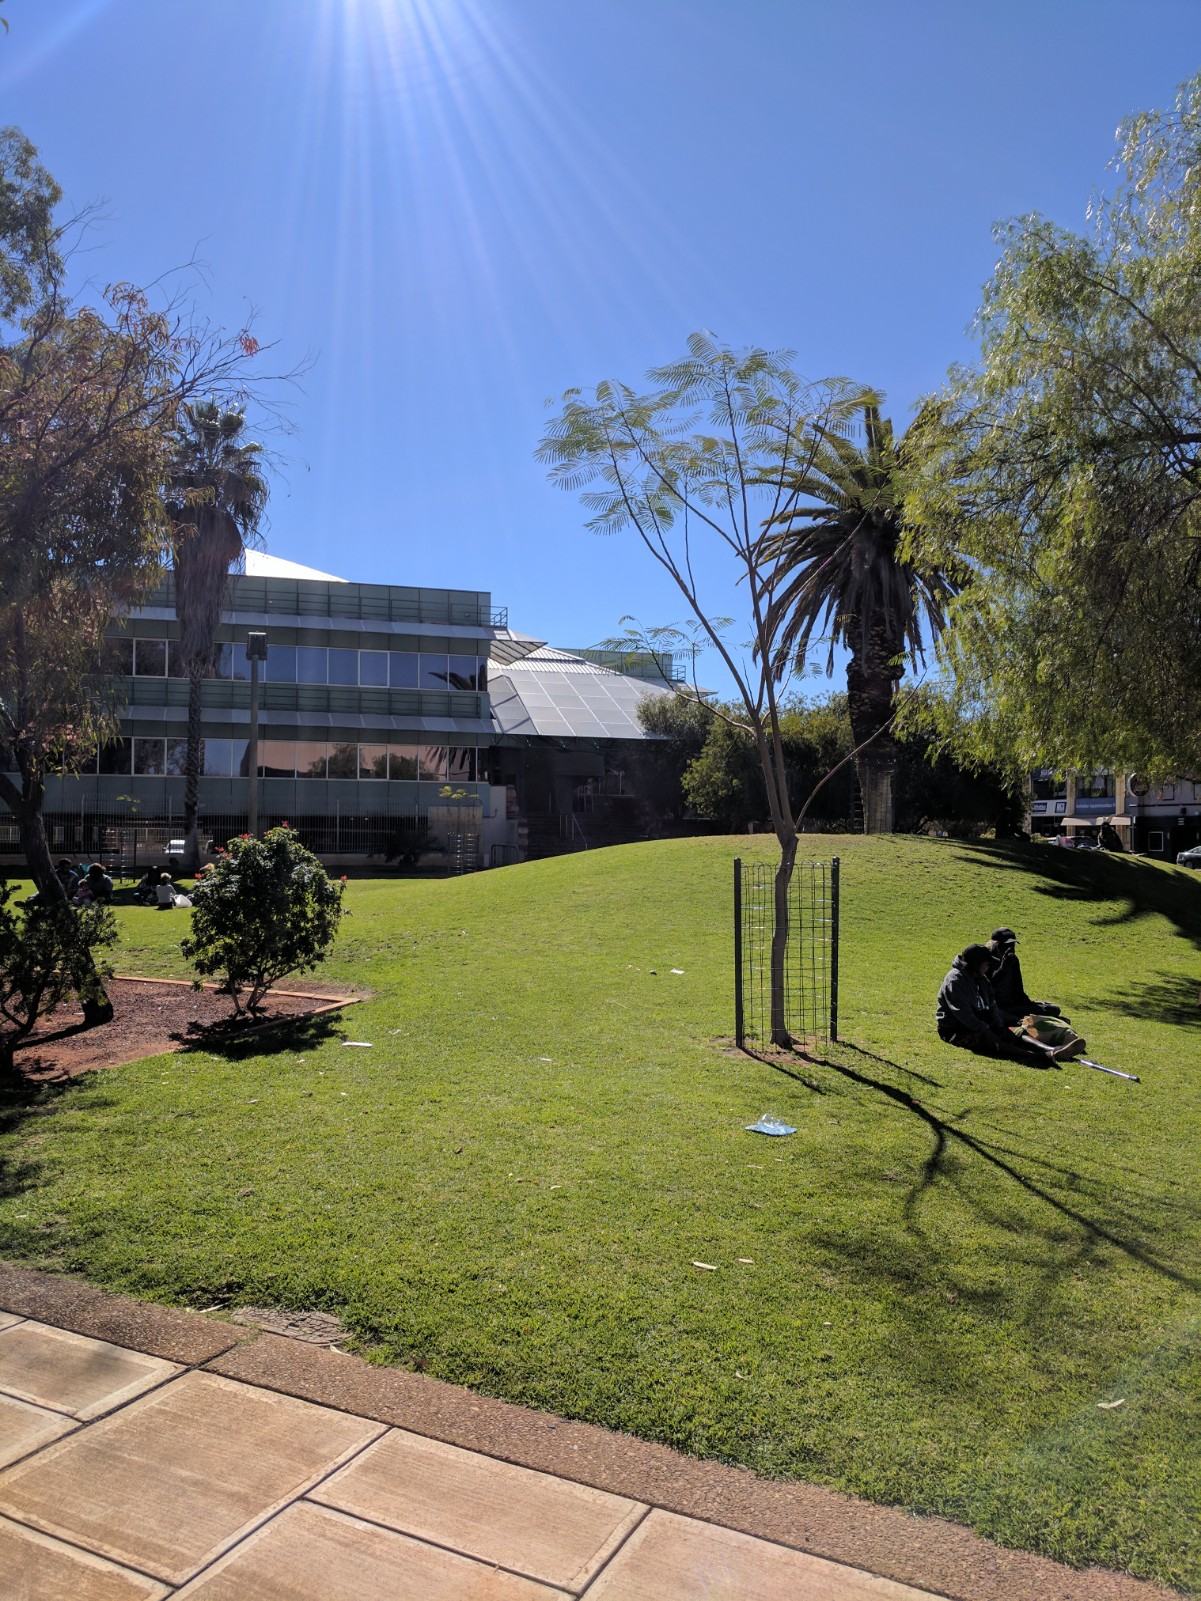 The lawn across from the Old Law Courts, a waiting room